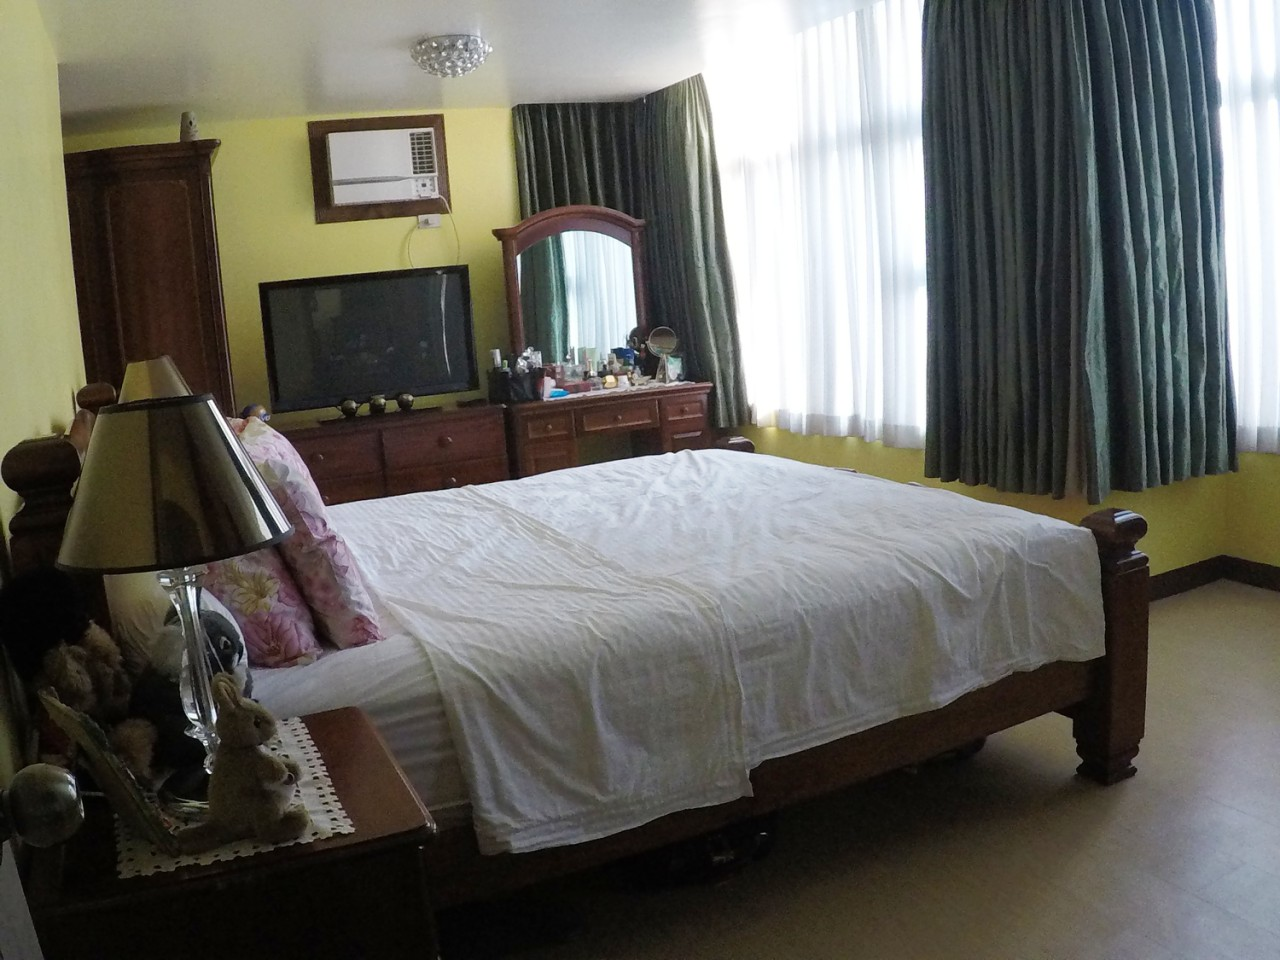 Fully Furnished Two Bedroom 2br Condo Unit For Sale In